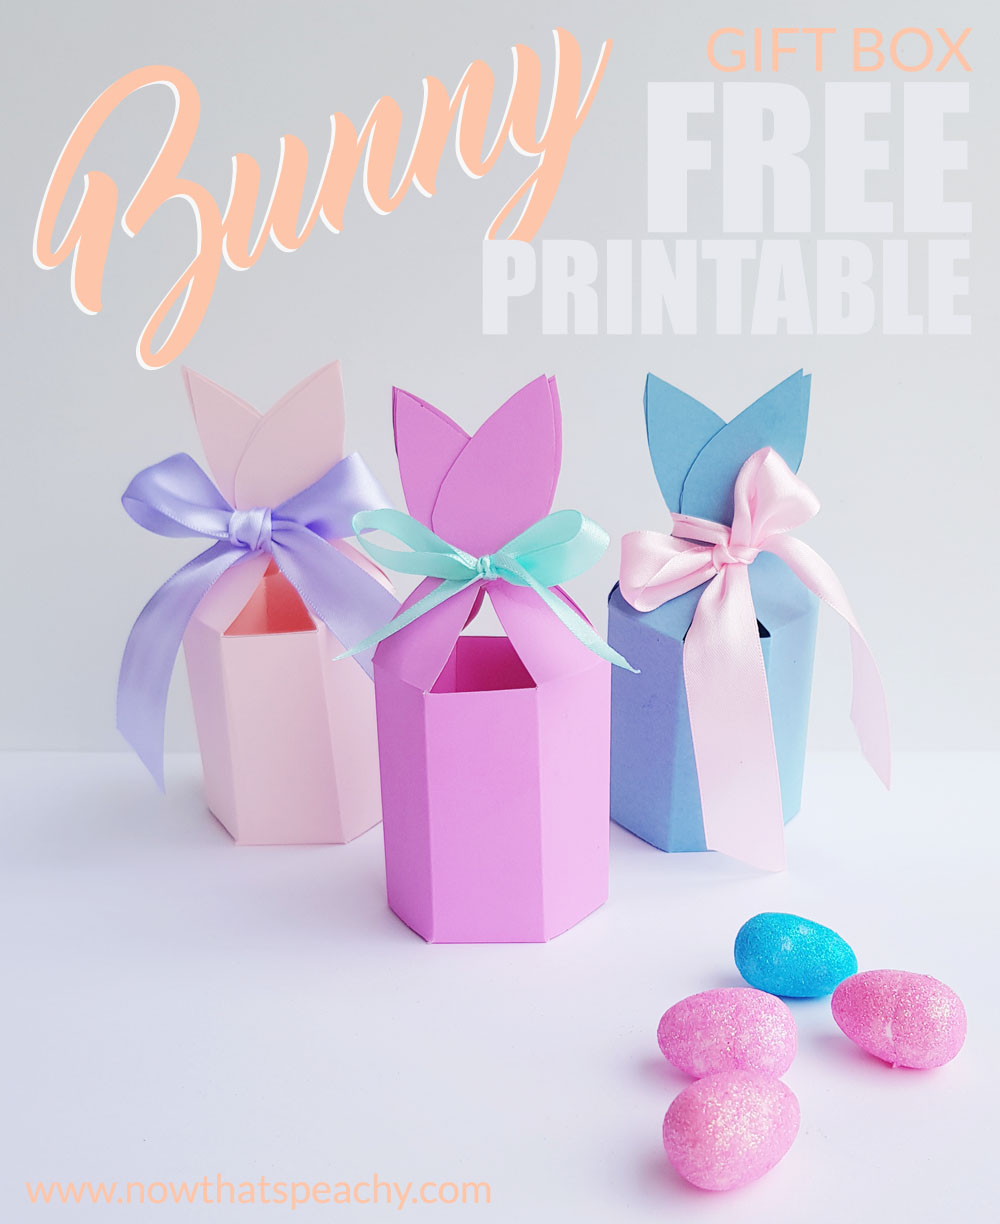 Free bunny ears gift box printable for easter now thats peachy for each easter party guest or the perfect size for small gifts for the kids school friends teacher or work colleagues also a easy craft project for negle Image collections